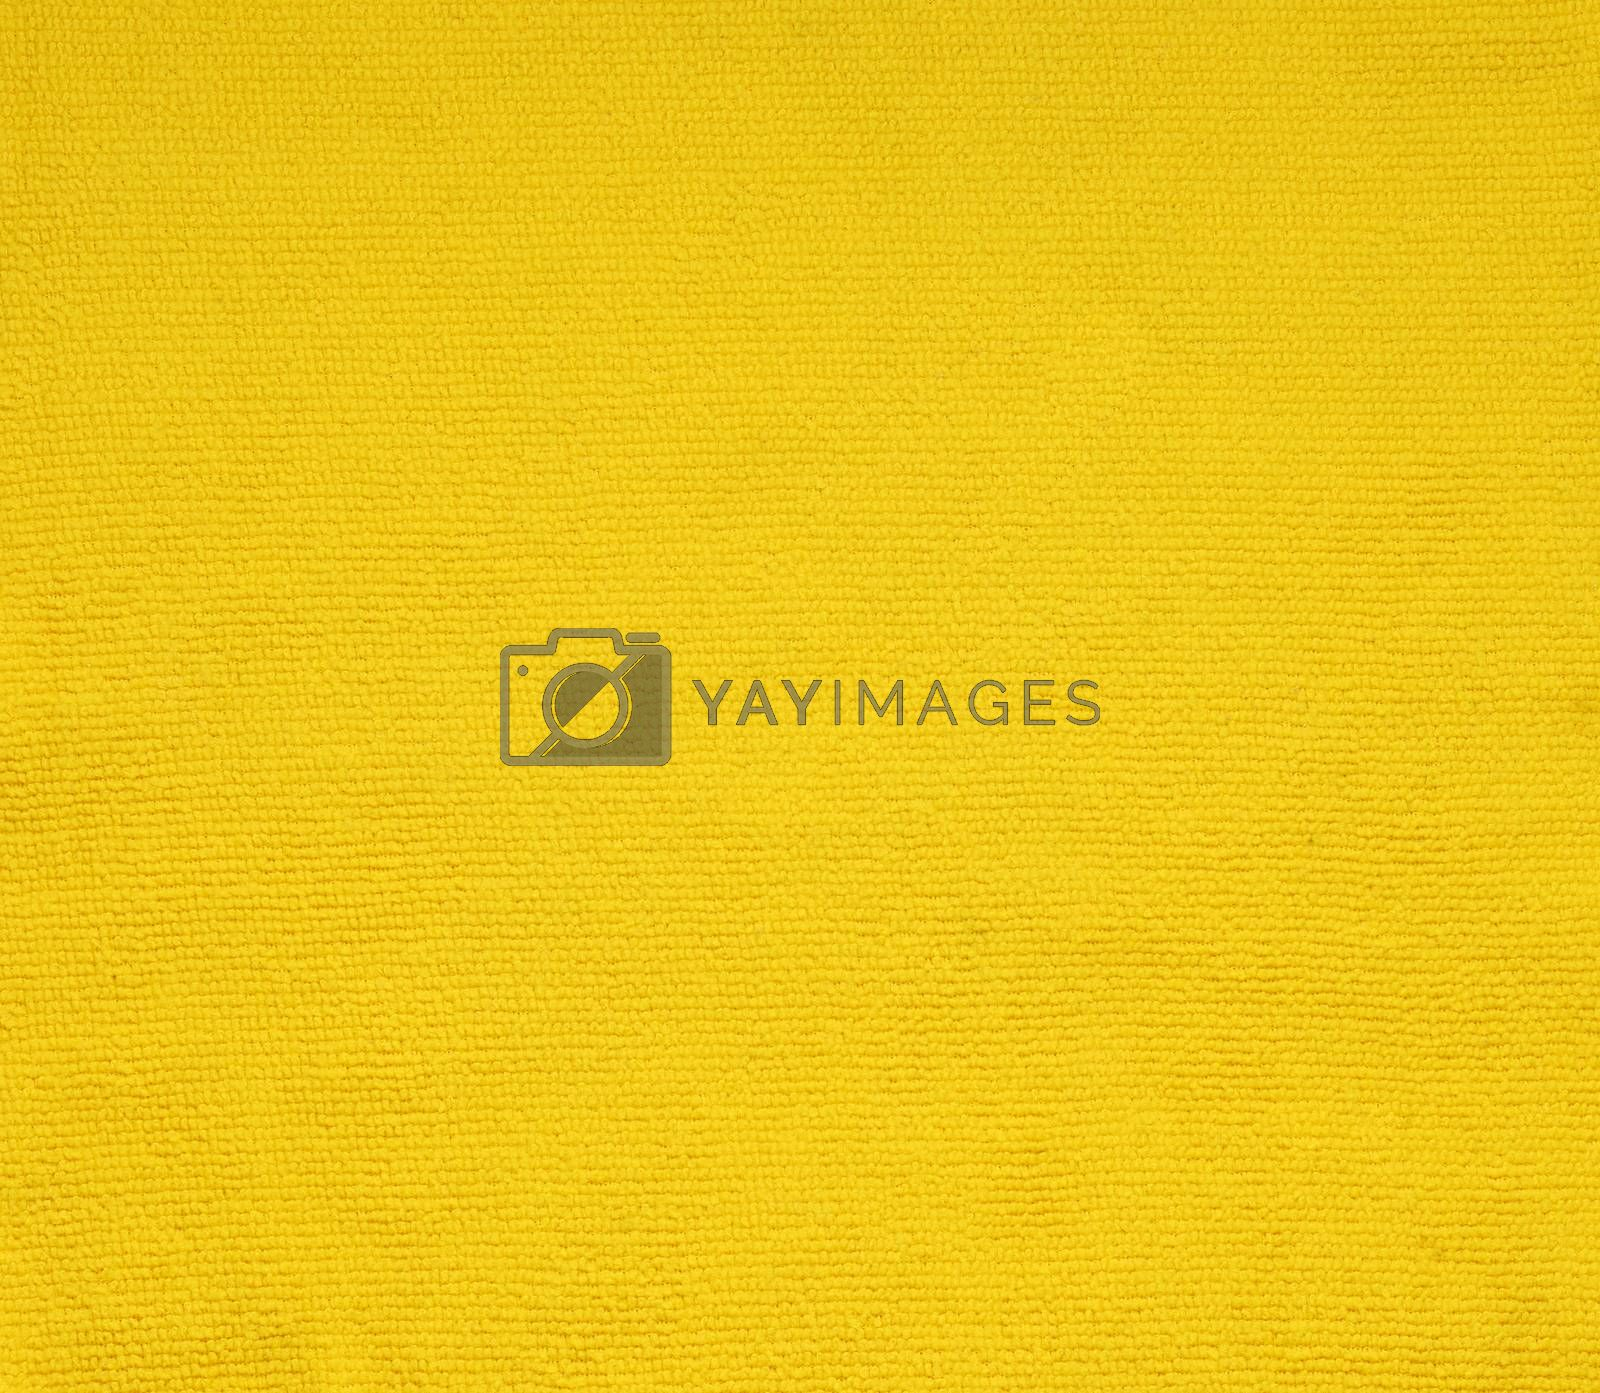 surface yellow fabric texture for background